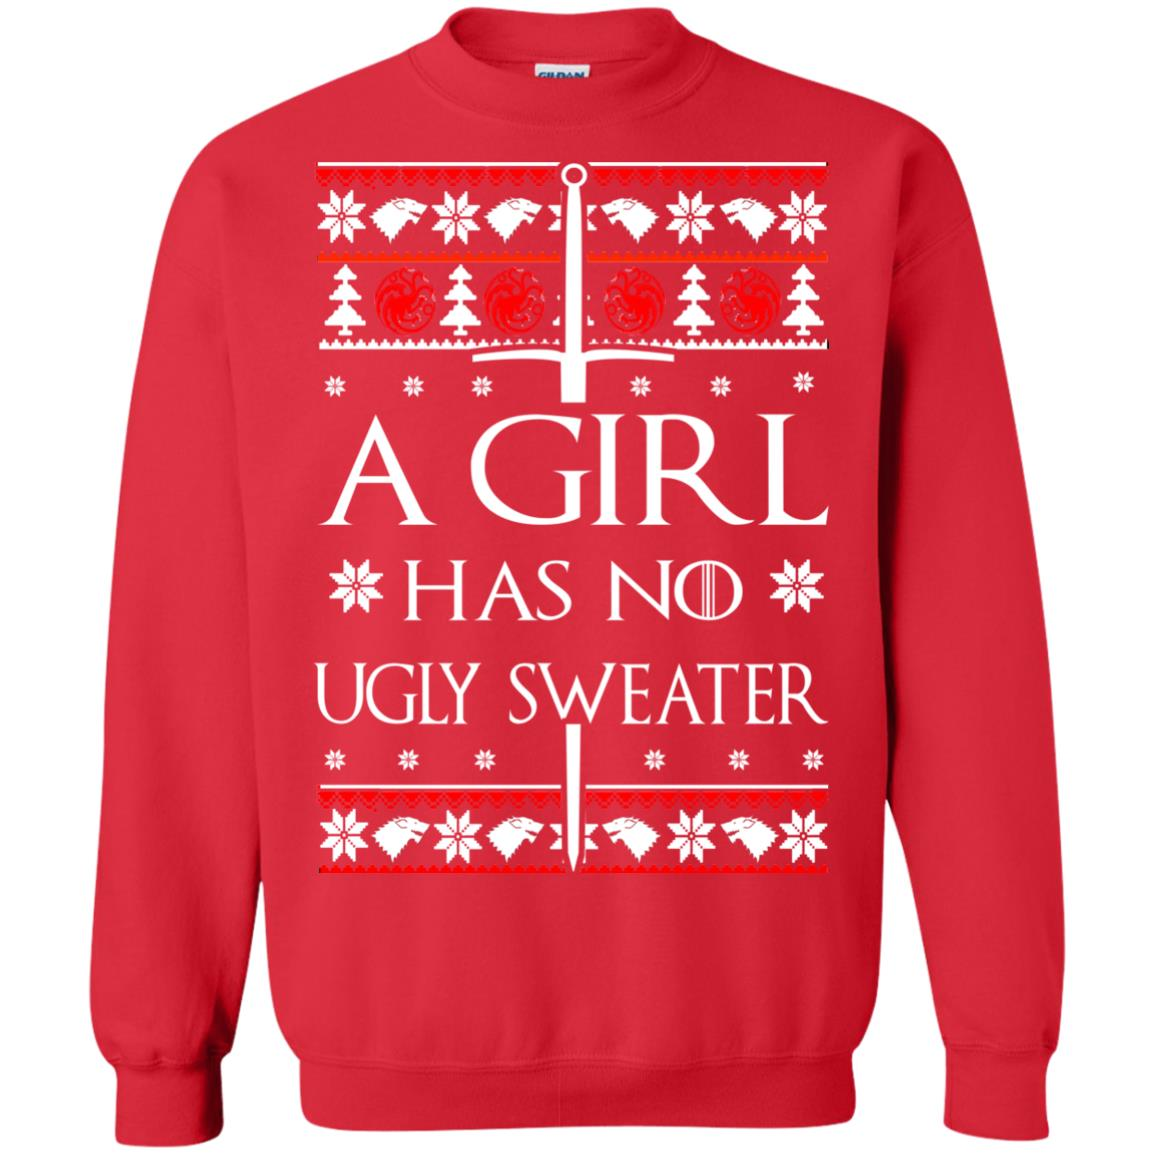 image 1507 - A Girl Has no Ugly Sweater, Shirt, Christmas Sweatshirt Game Of Thrones